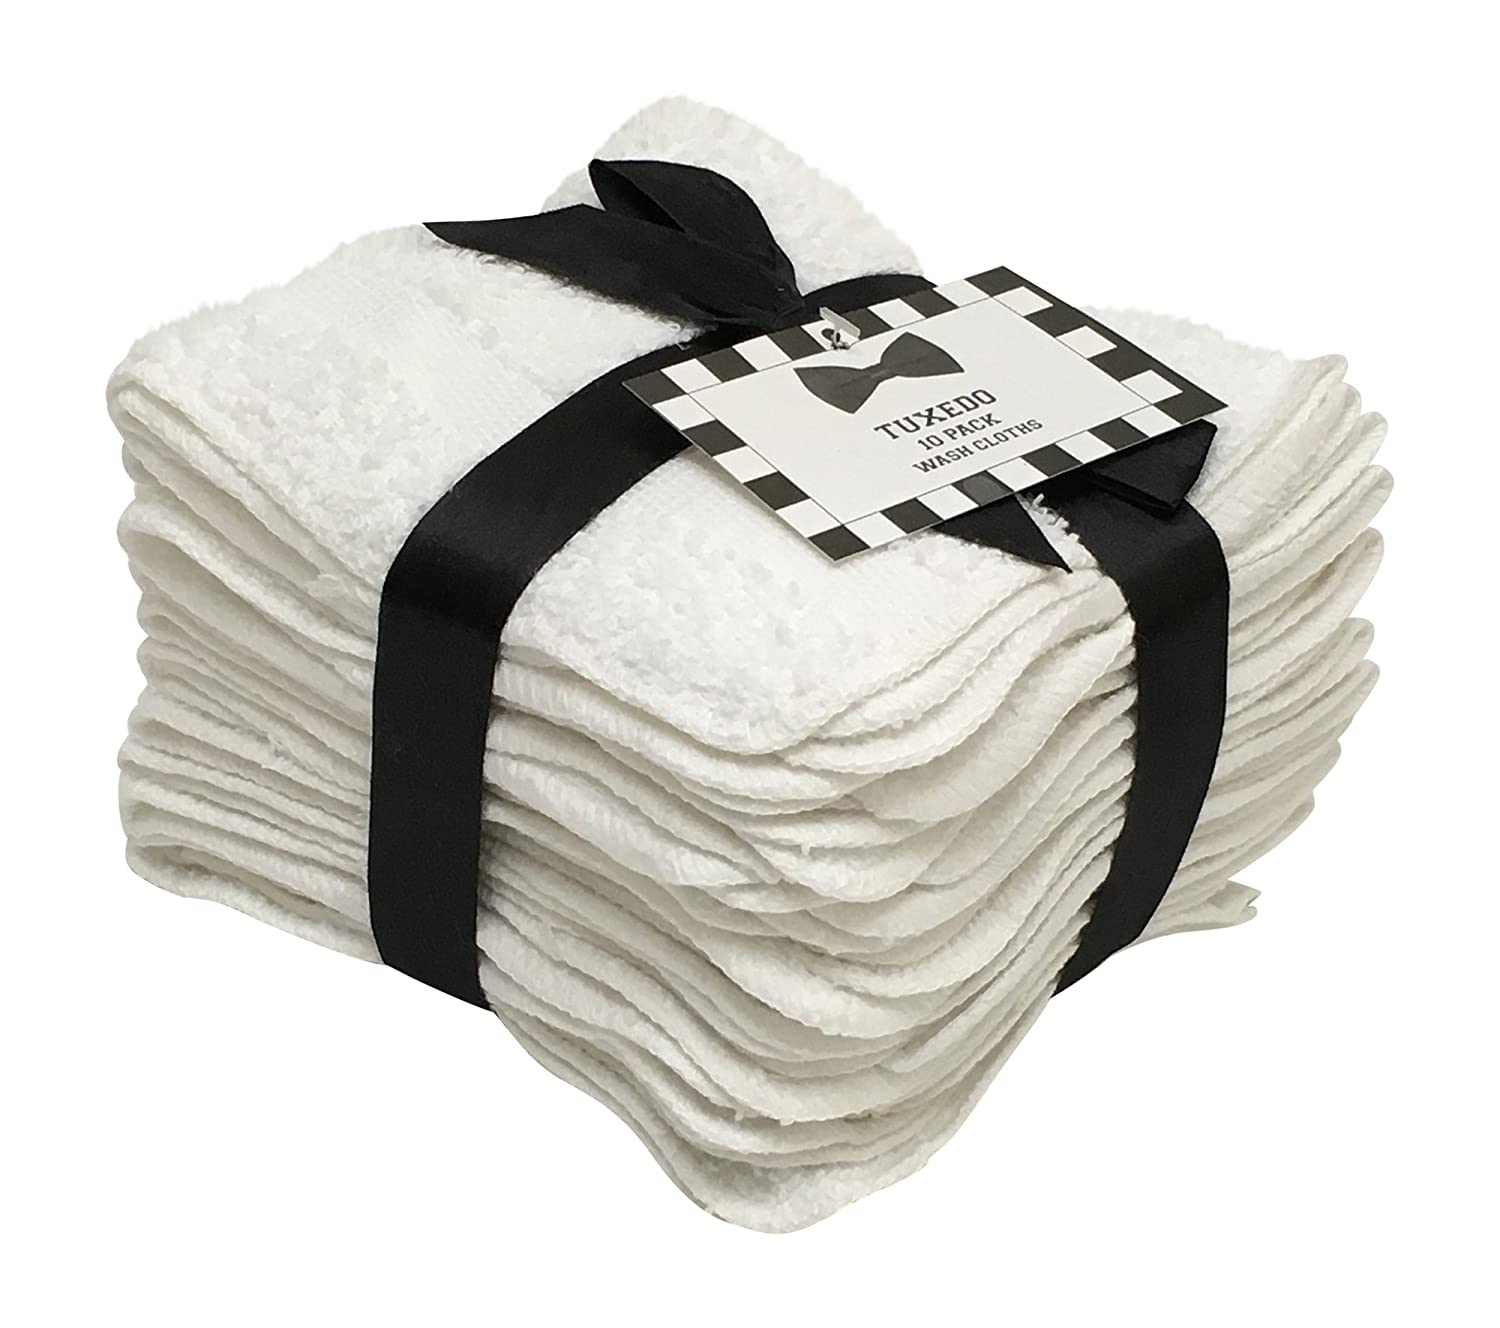 10 Pack Tuxedo Wash Cloths Washcloths